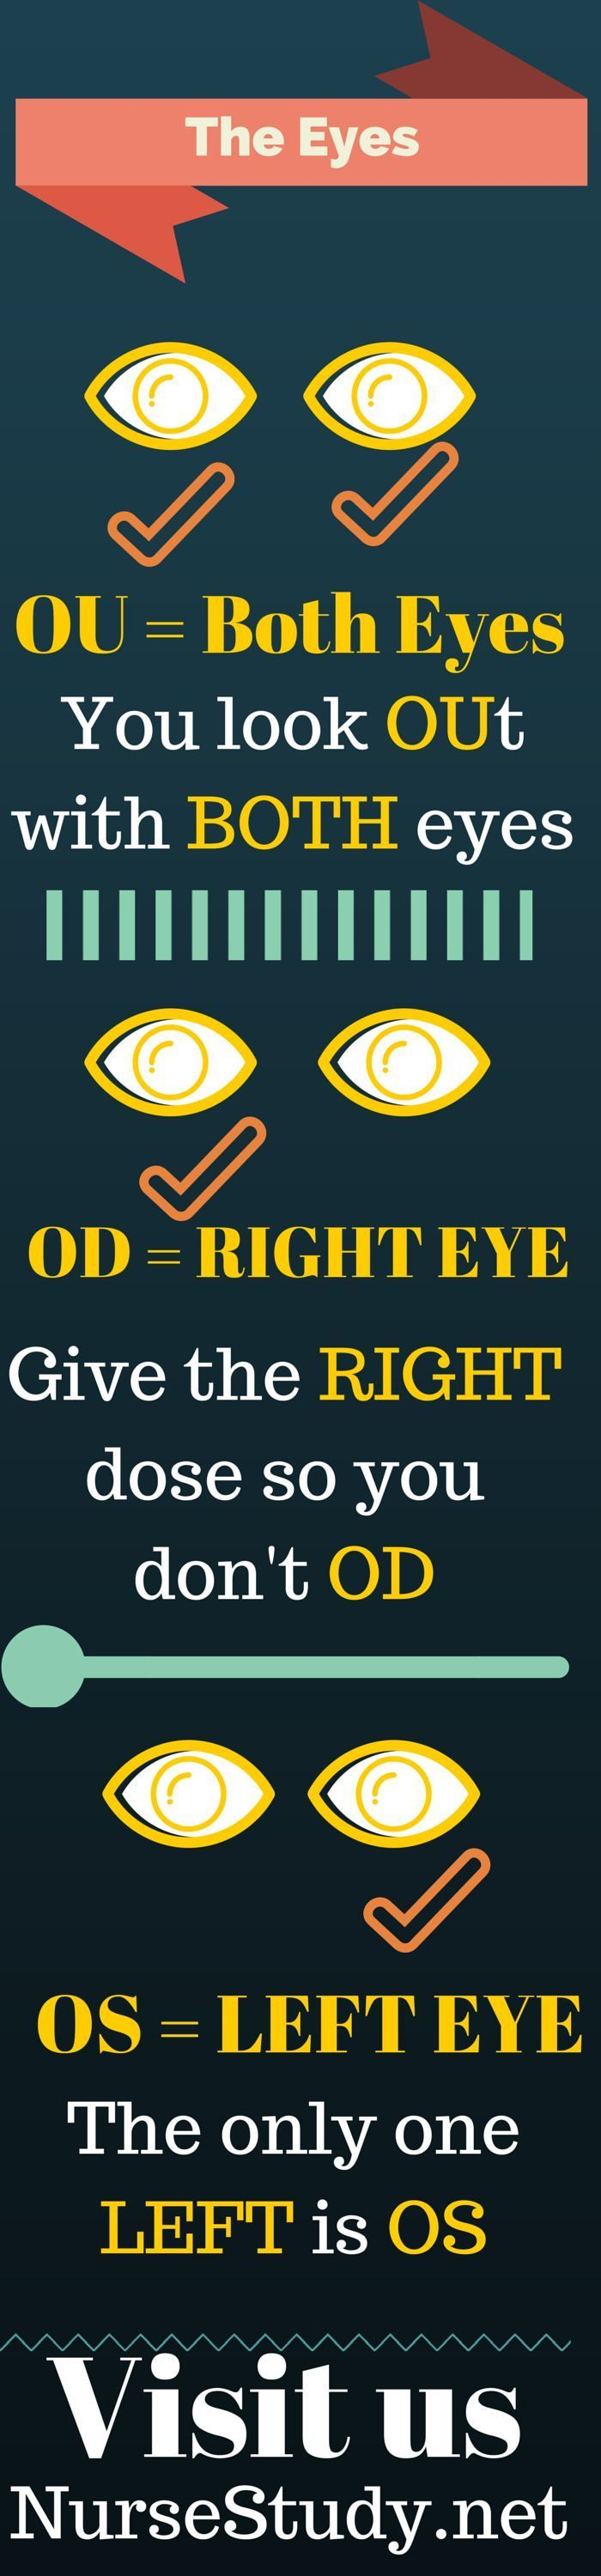 Cool visual on the eyes. Great way for nurses and nursing students to remember the abbreviations for the eyes.